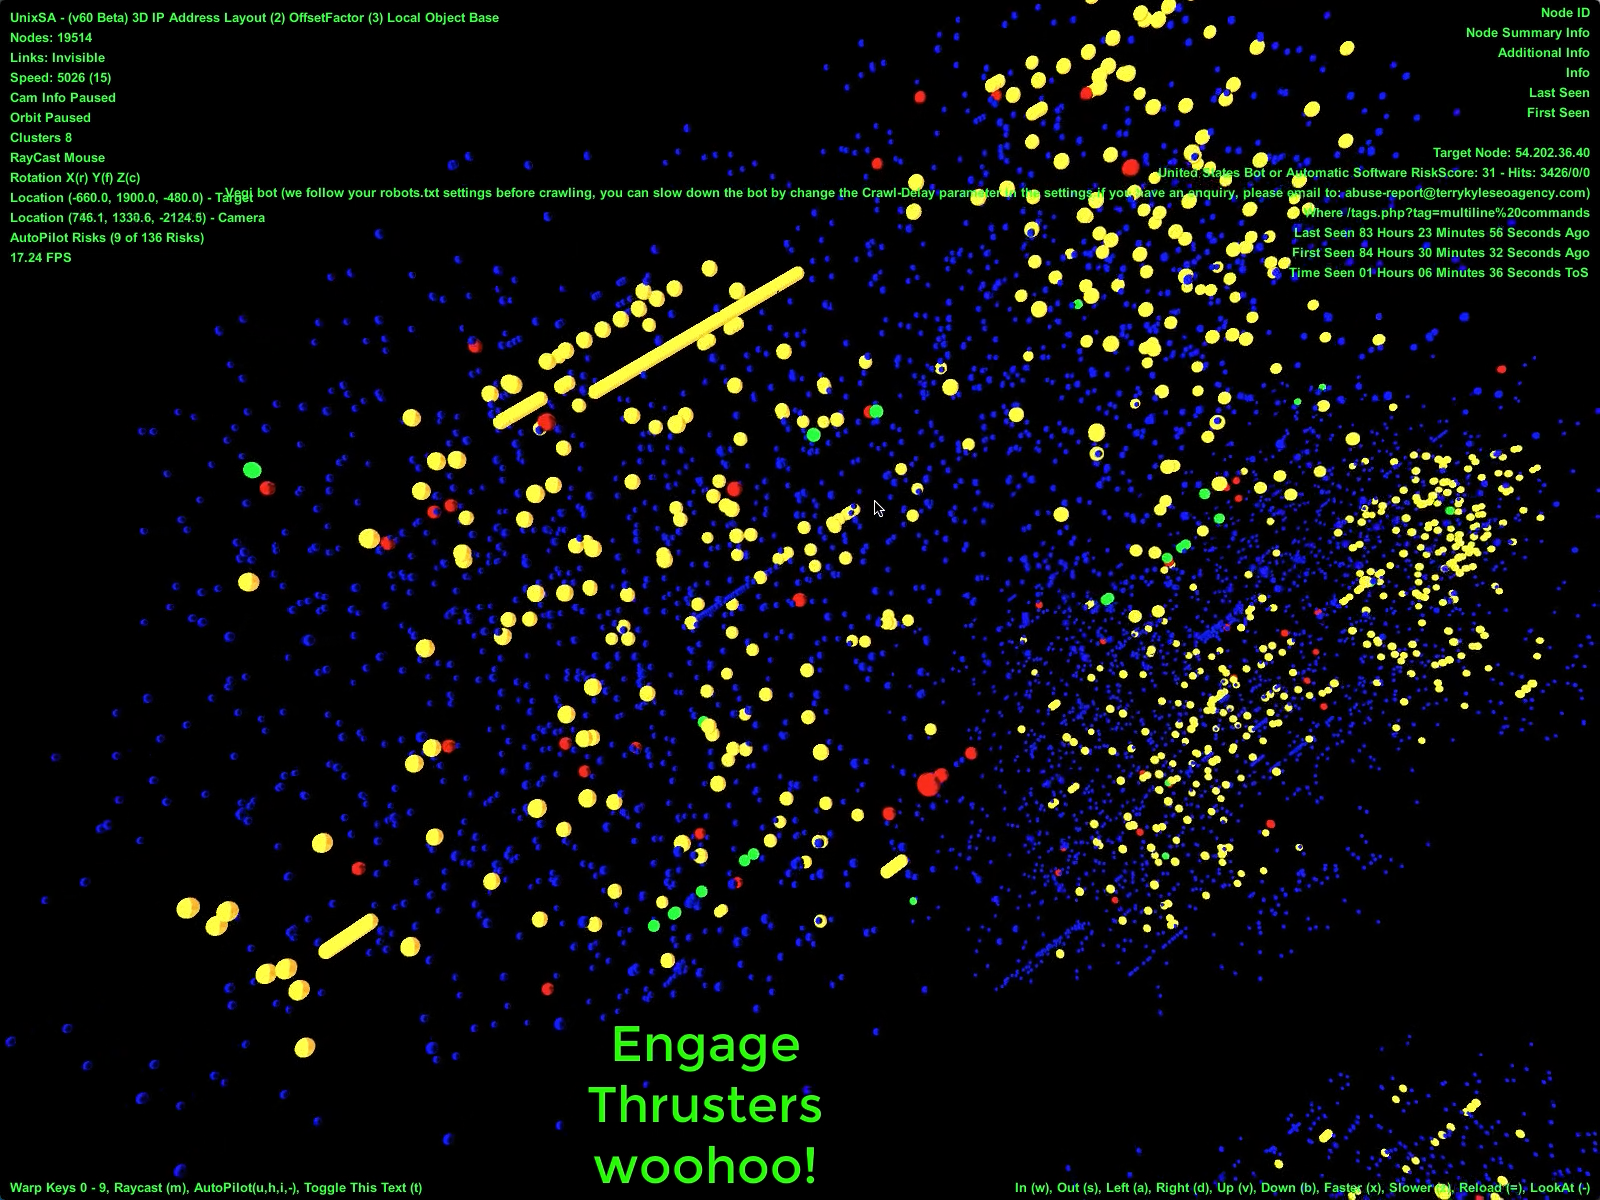 Cyberspace Situational Awareness Engage Thrusters